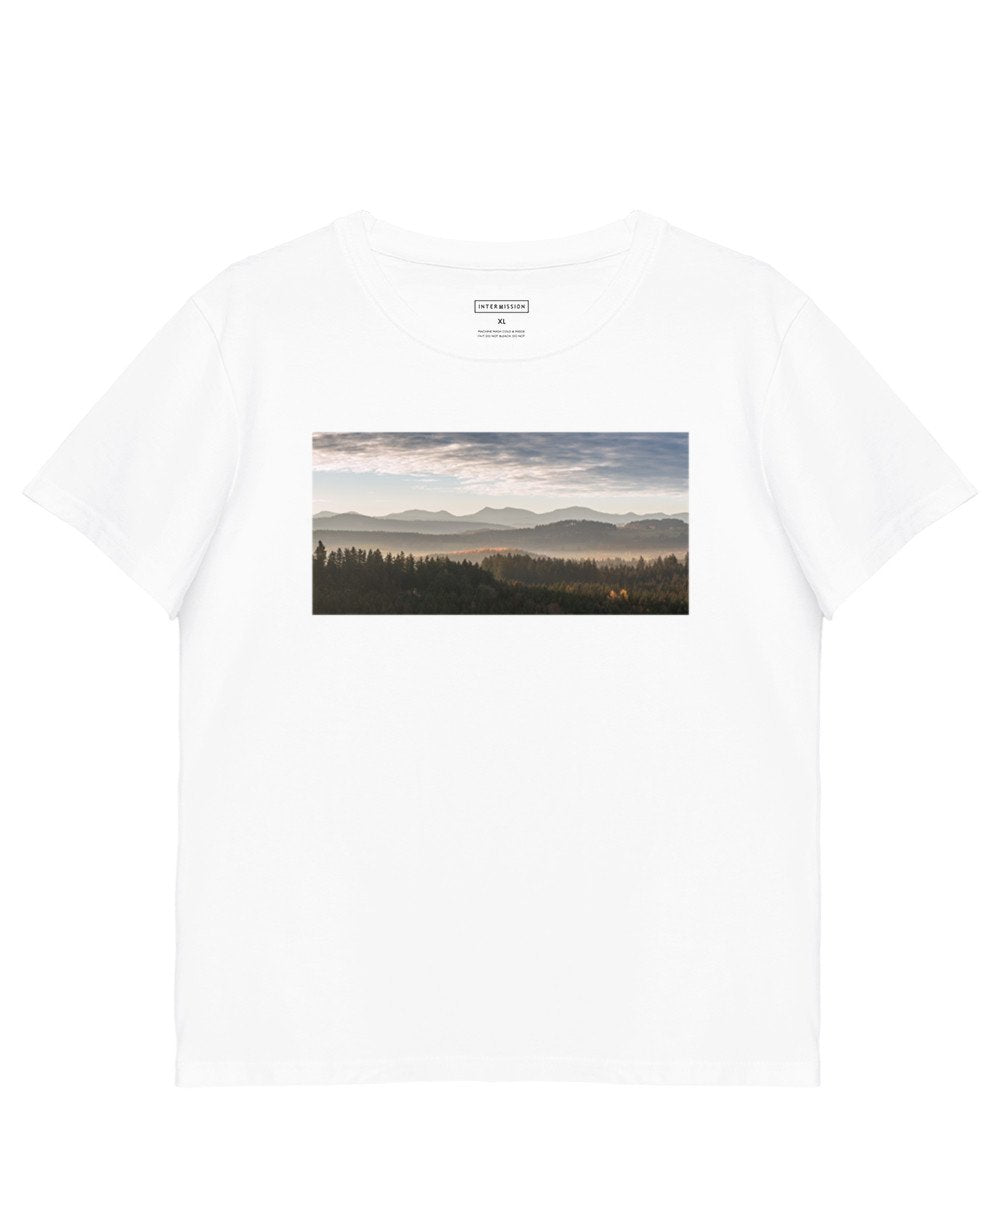 Landscape Print T-Shirt in White - T-Shirts - INTERMISSION - BRANMA